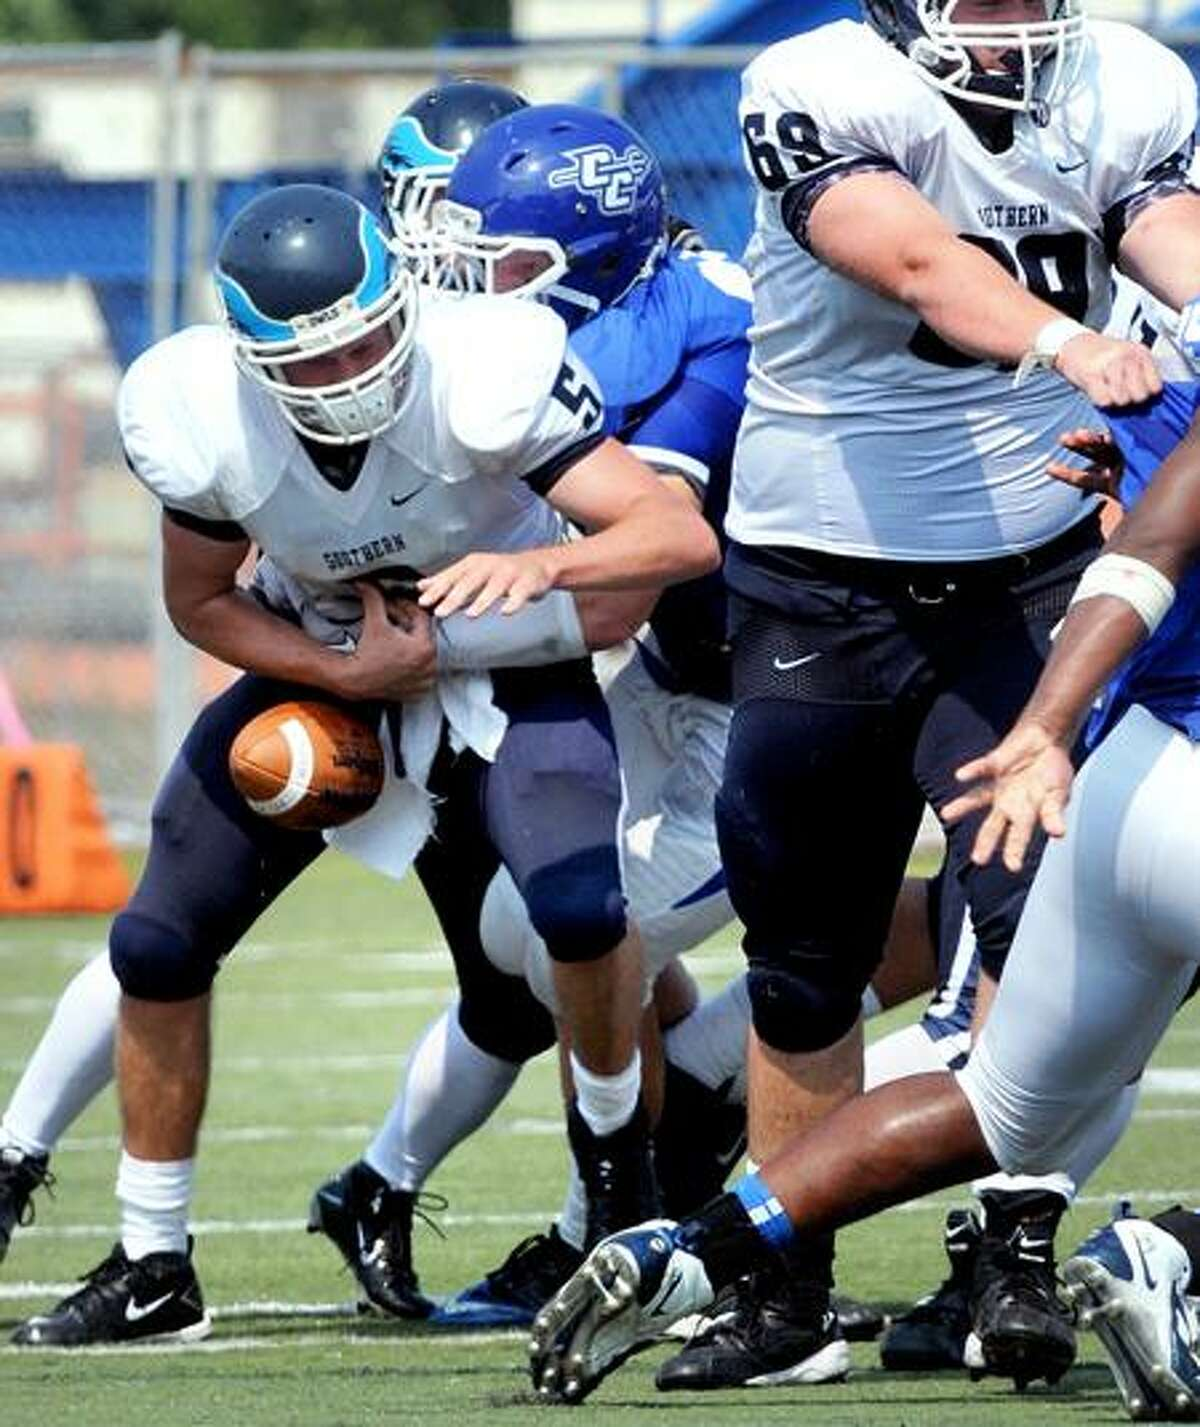 SCSU quarterback Kevin Lynch (left) fumbles the ball while being tackled in the second half against CCSU in New Britain on 9/3/2011. Lynch recovered the ball.Photo by Arnold Gold/New Haven Register AG0423B